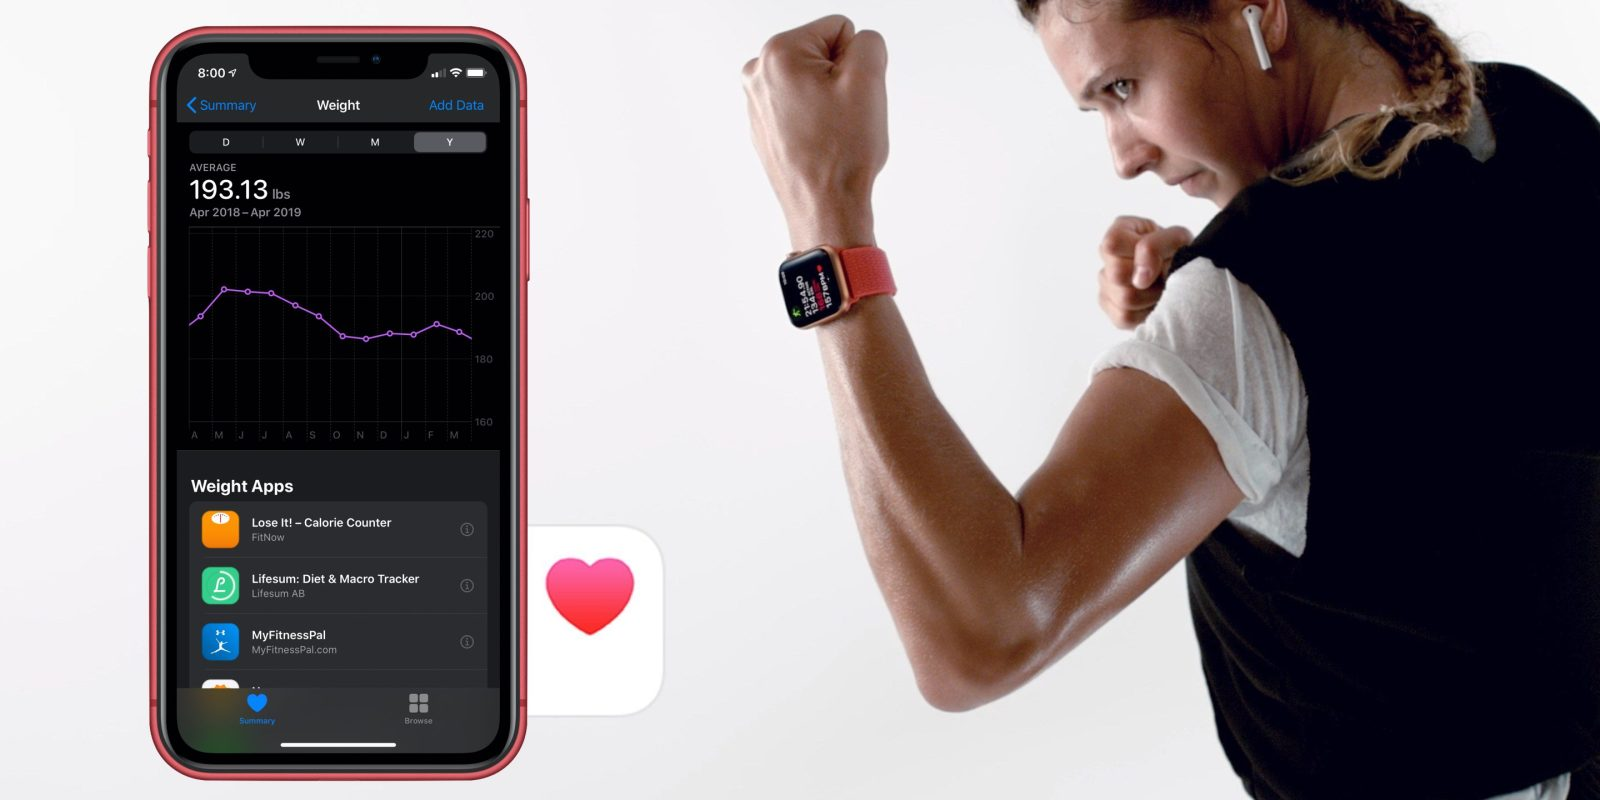 Working out with Apple Watch? These smart scales sync weight with iPhone